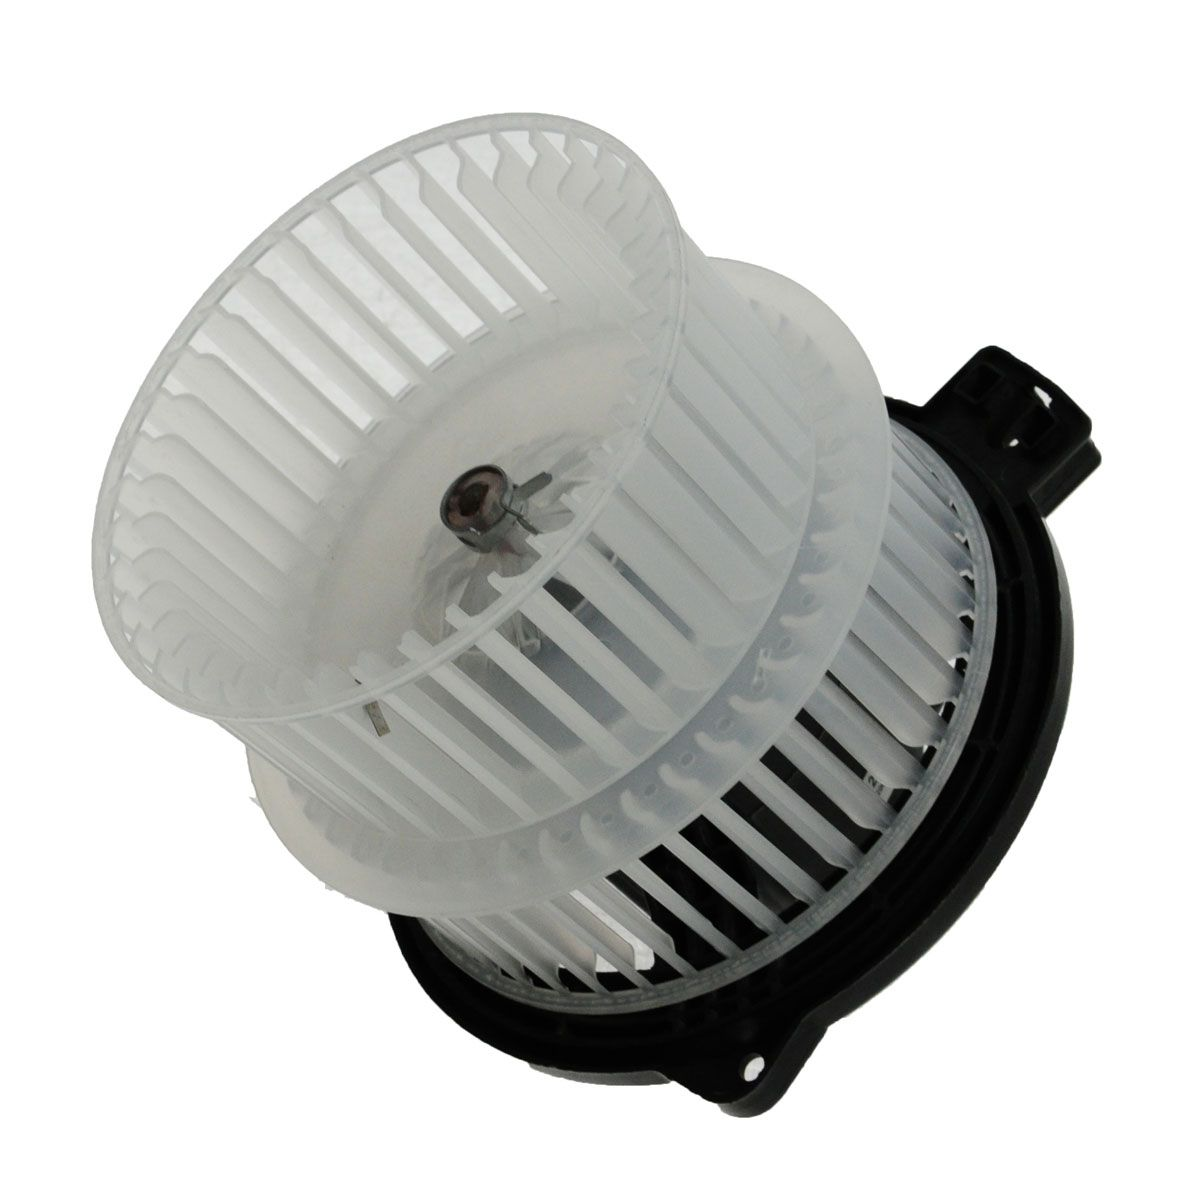 ABS plastic Heater Blower Motor with w// Fan Cage for Toyota Tacoma Echo Pickup